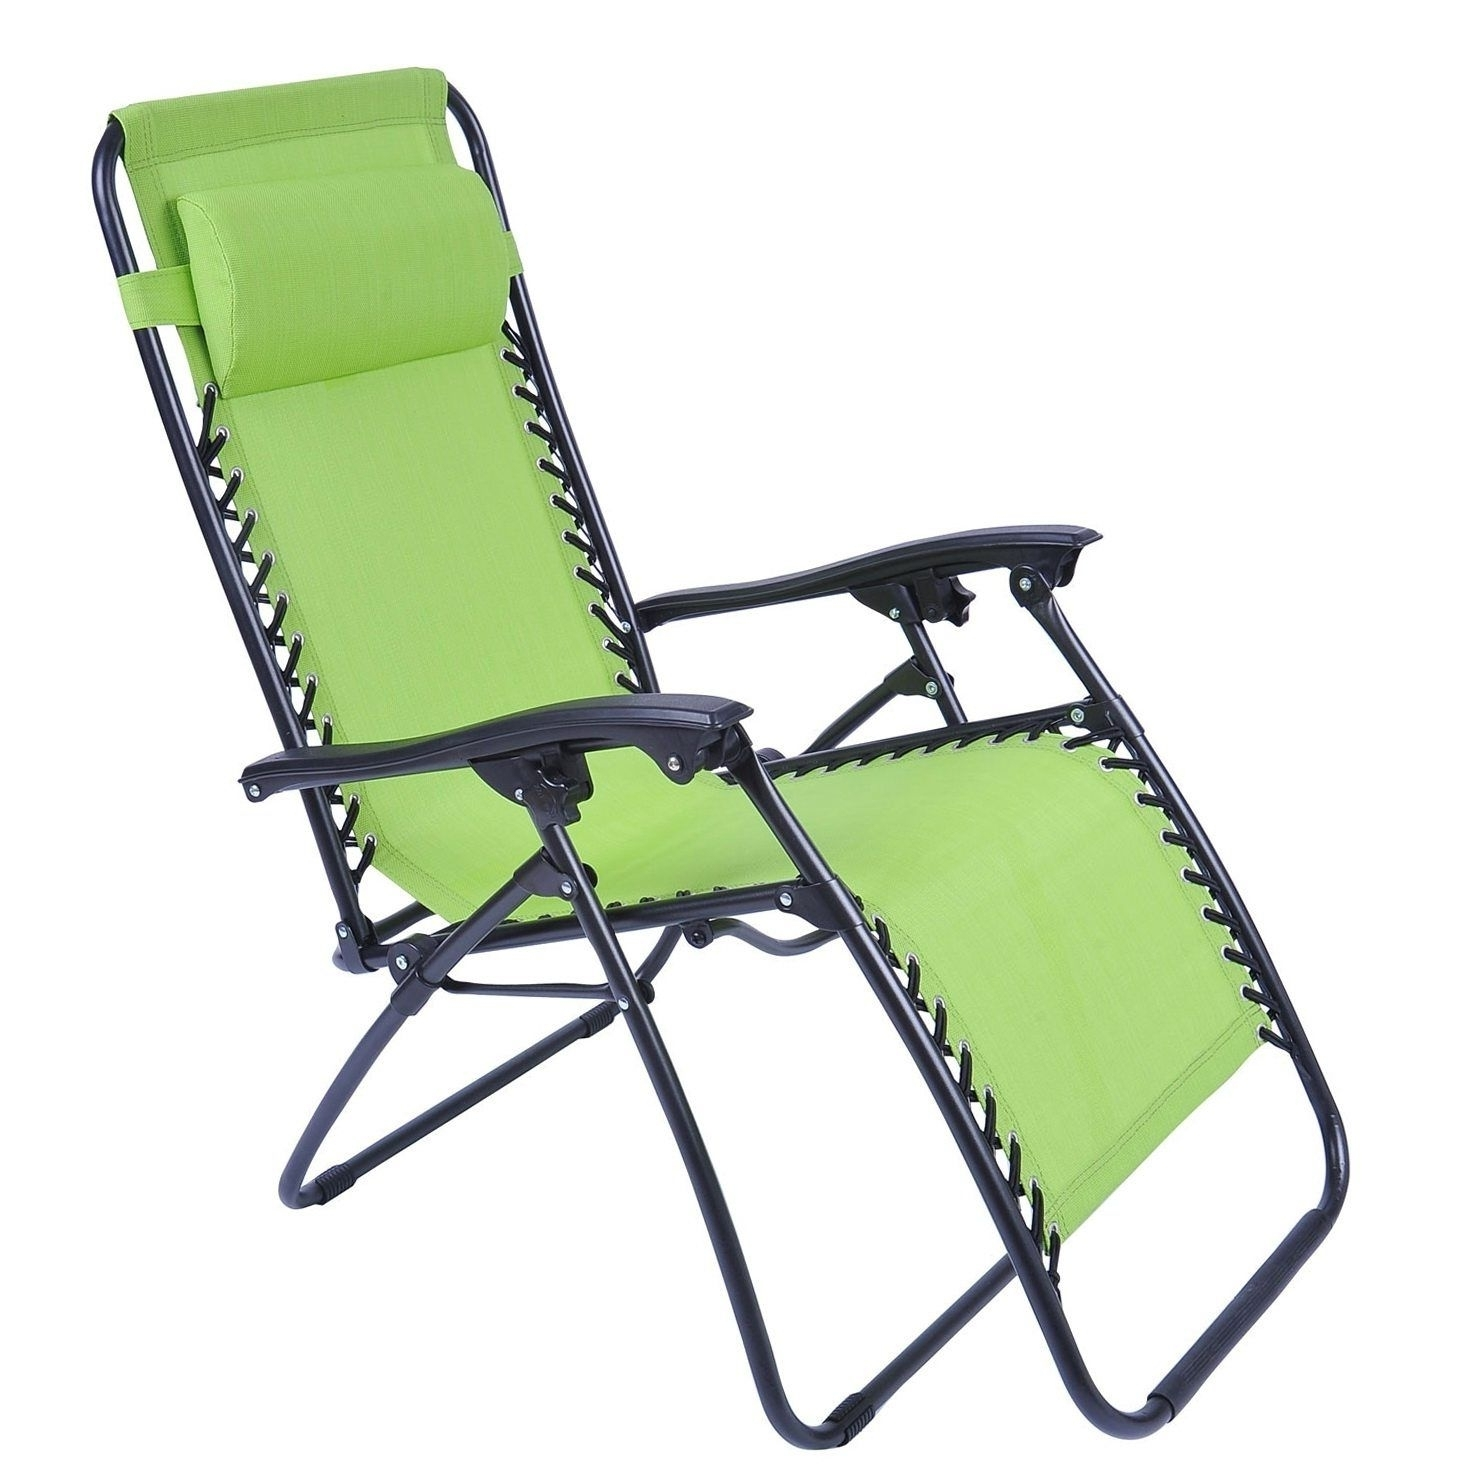 Lounge Chair Outdoor Folding Folding Chaise Lounge Chair Patio In Well Known Foldable Chaise Lounges (View 10 of 15)